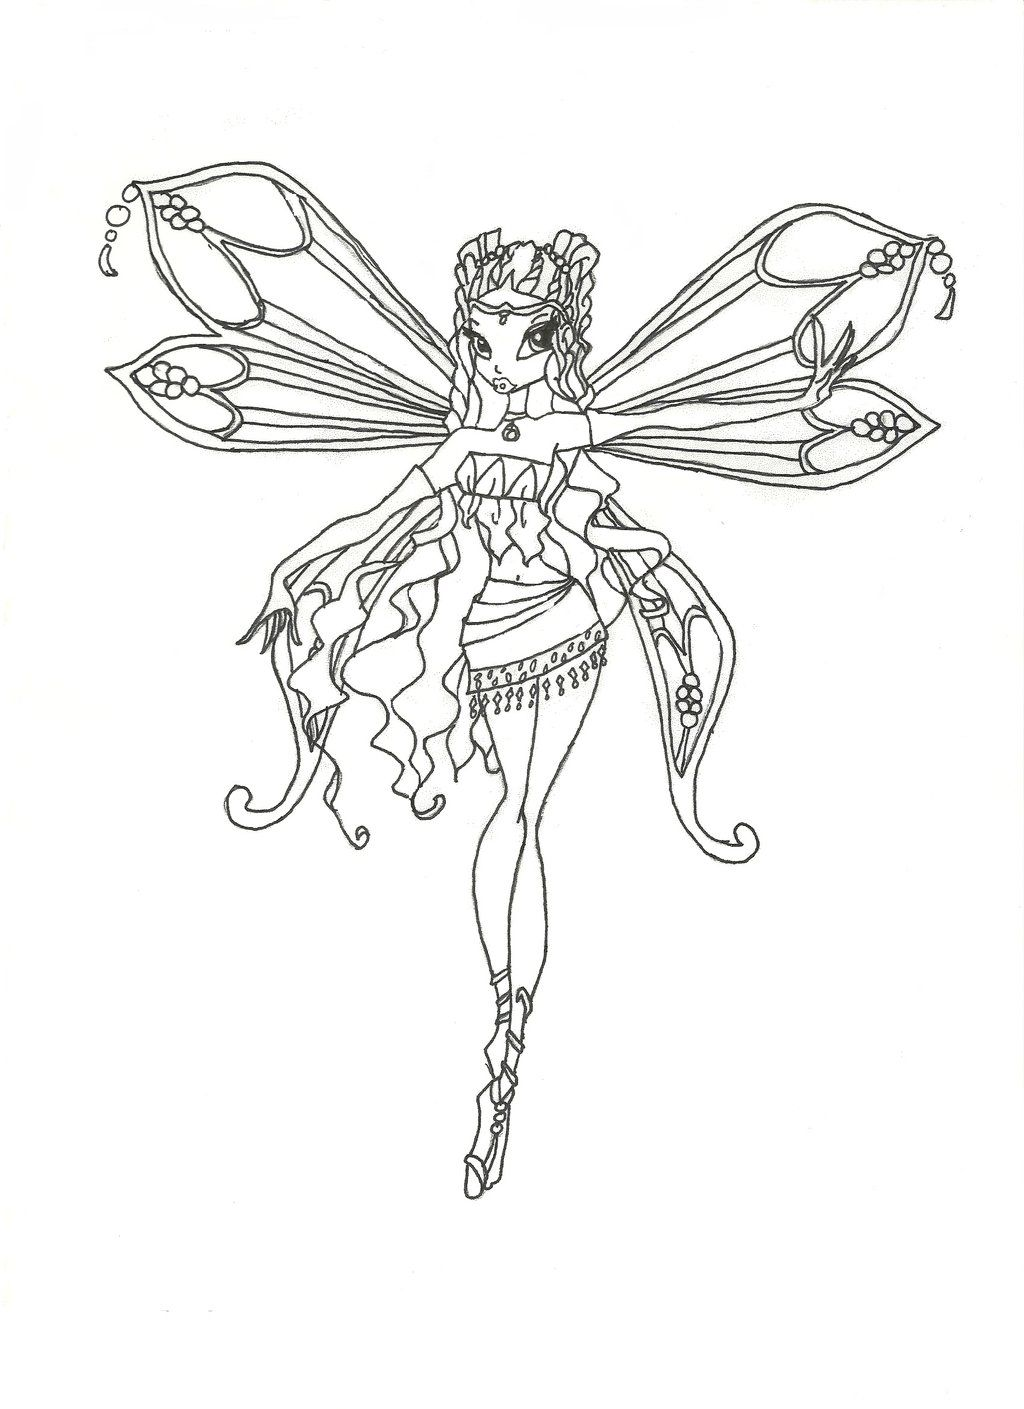 Winx Club Enchantix Layla Coloring Page By Winxmagic237deviantart On DeviantArt